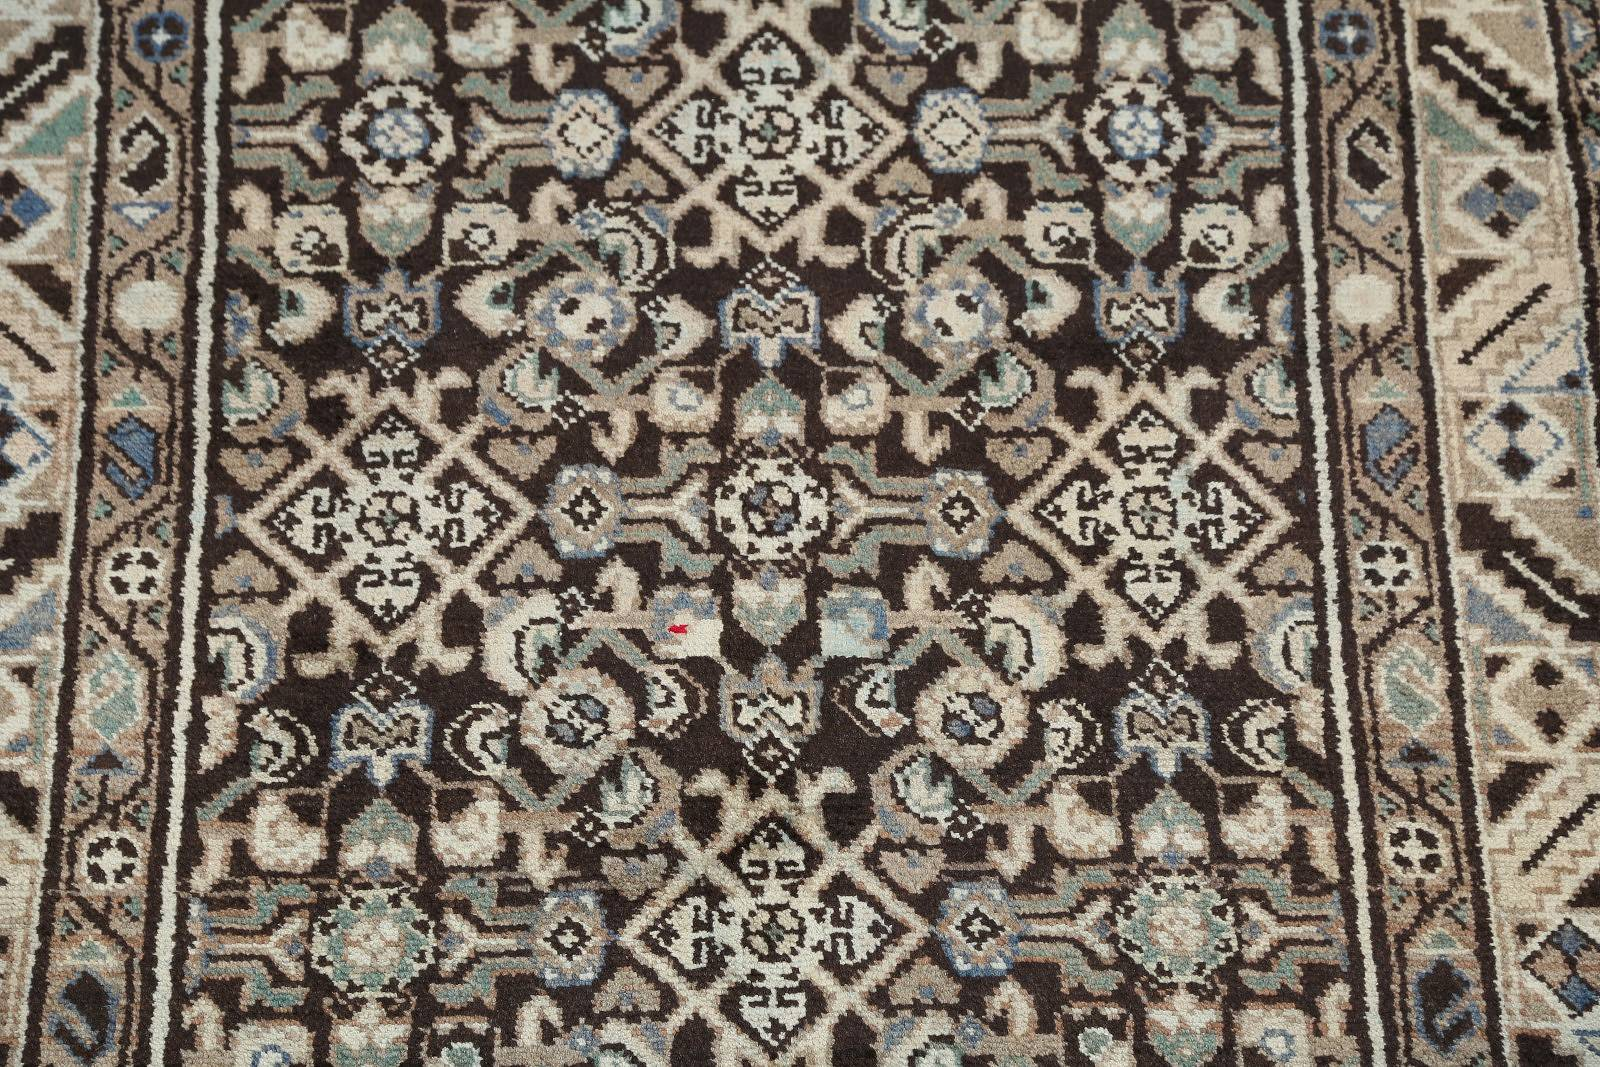 All-Over Floral Muted 4x14 Hamedan Persian Rug Runner